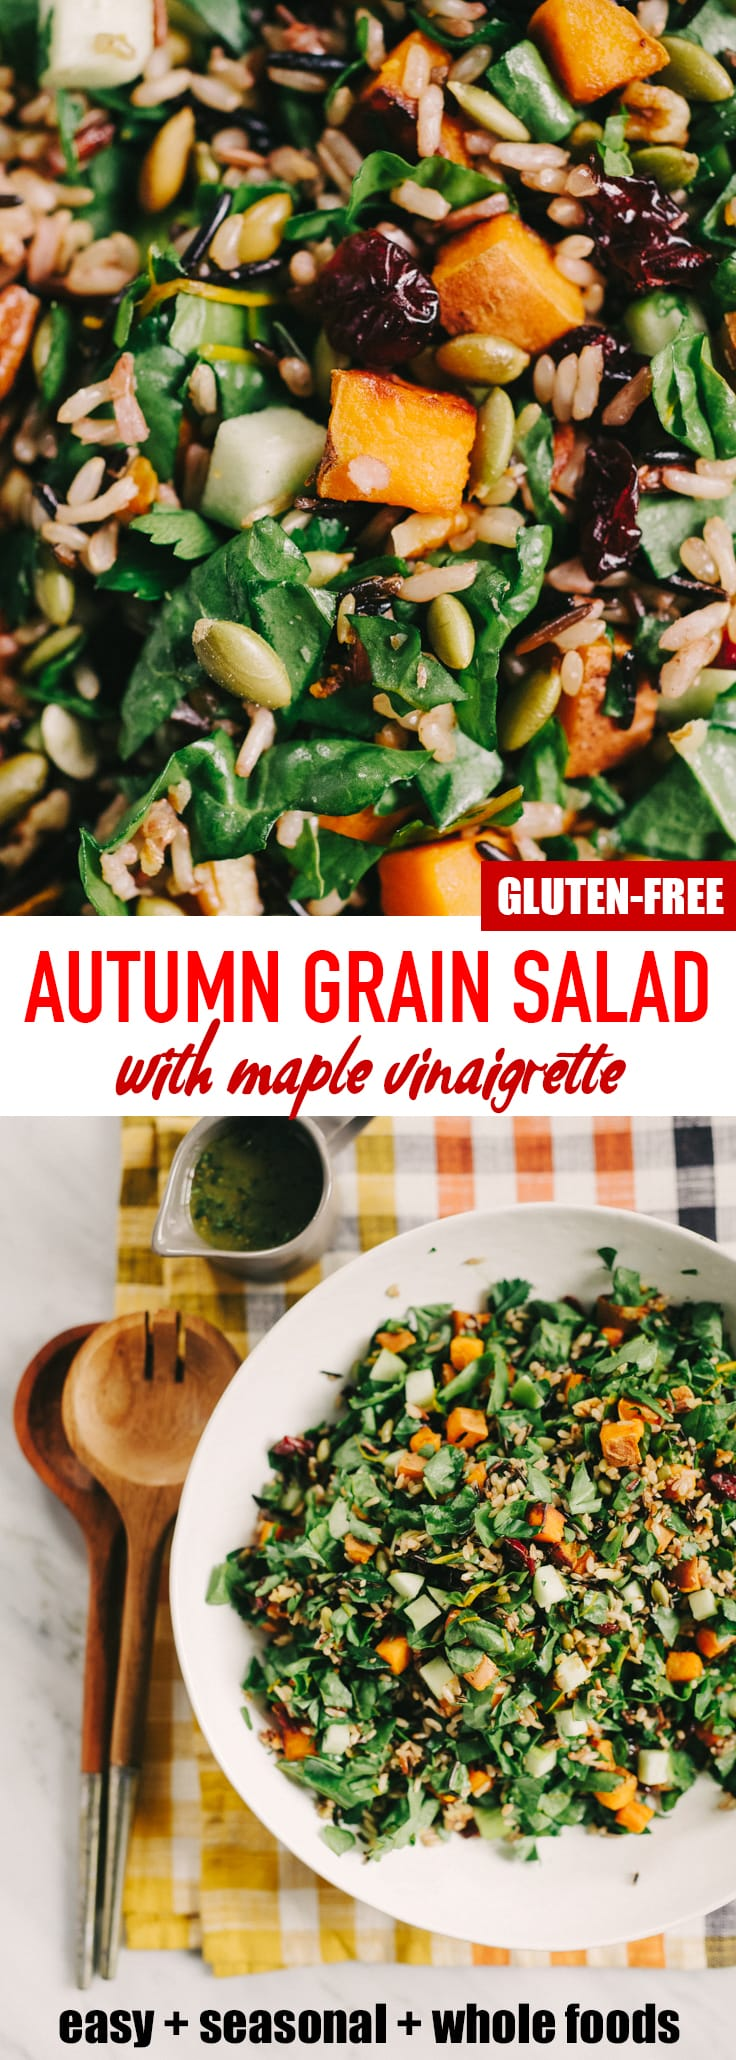 This roasted sweet potato salad with maple vinaigrette is bursting with fall harvest flavor! Roasted sweet potatoes, crisp apples, tender swiss chard, and nutty wild rice come together for a hearty, nutritious, and flavor-packed vegetarian dinner. #vegetarian #vegan #glutenfree #fall #autumn #grainsalad